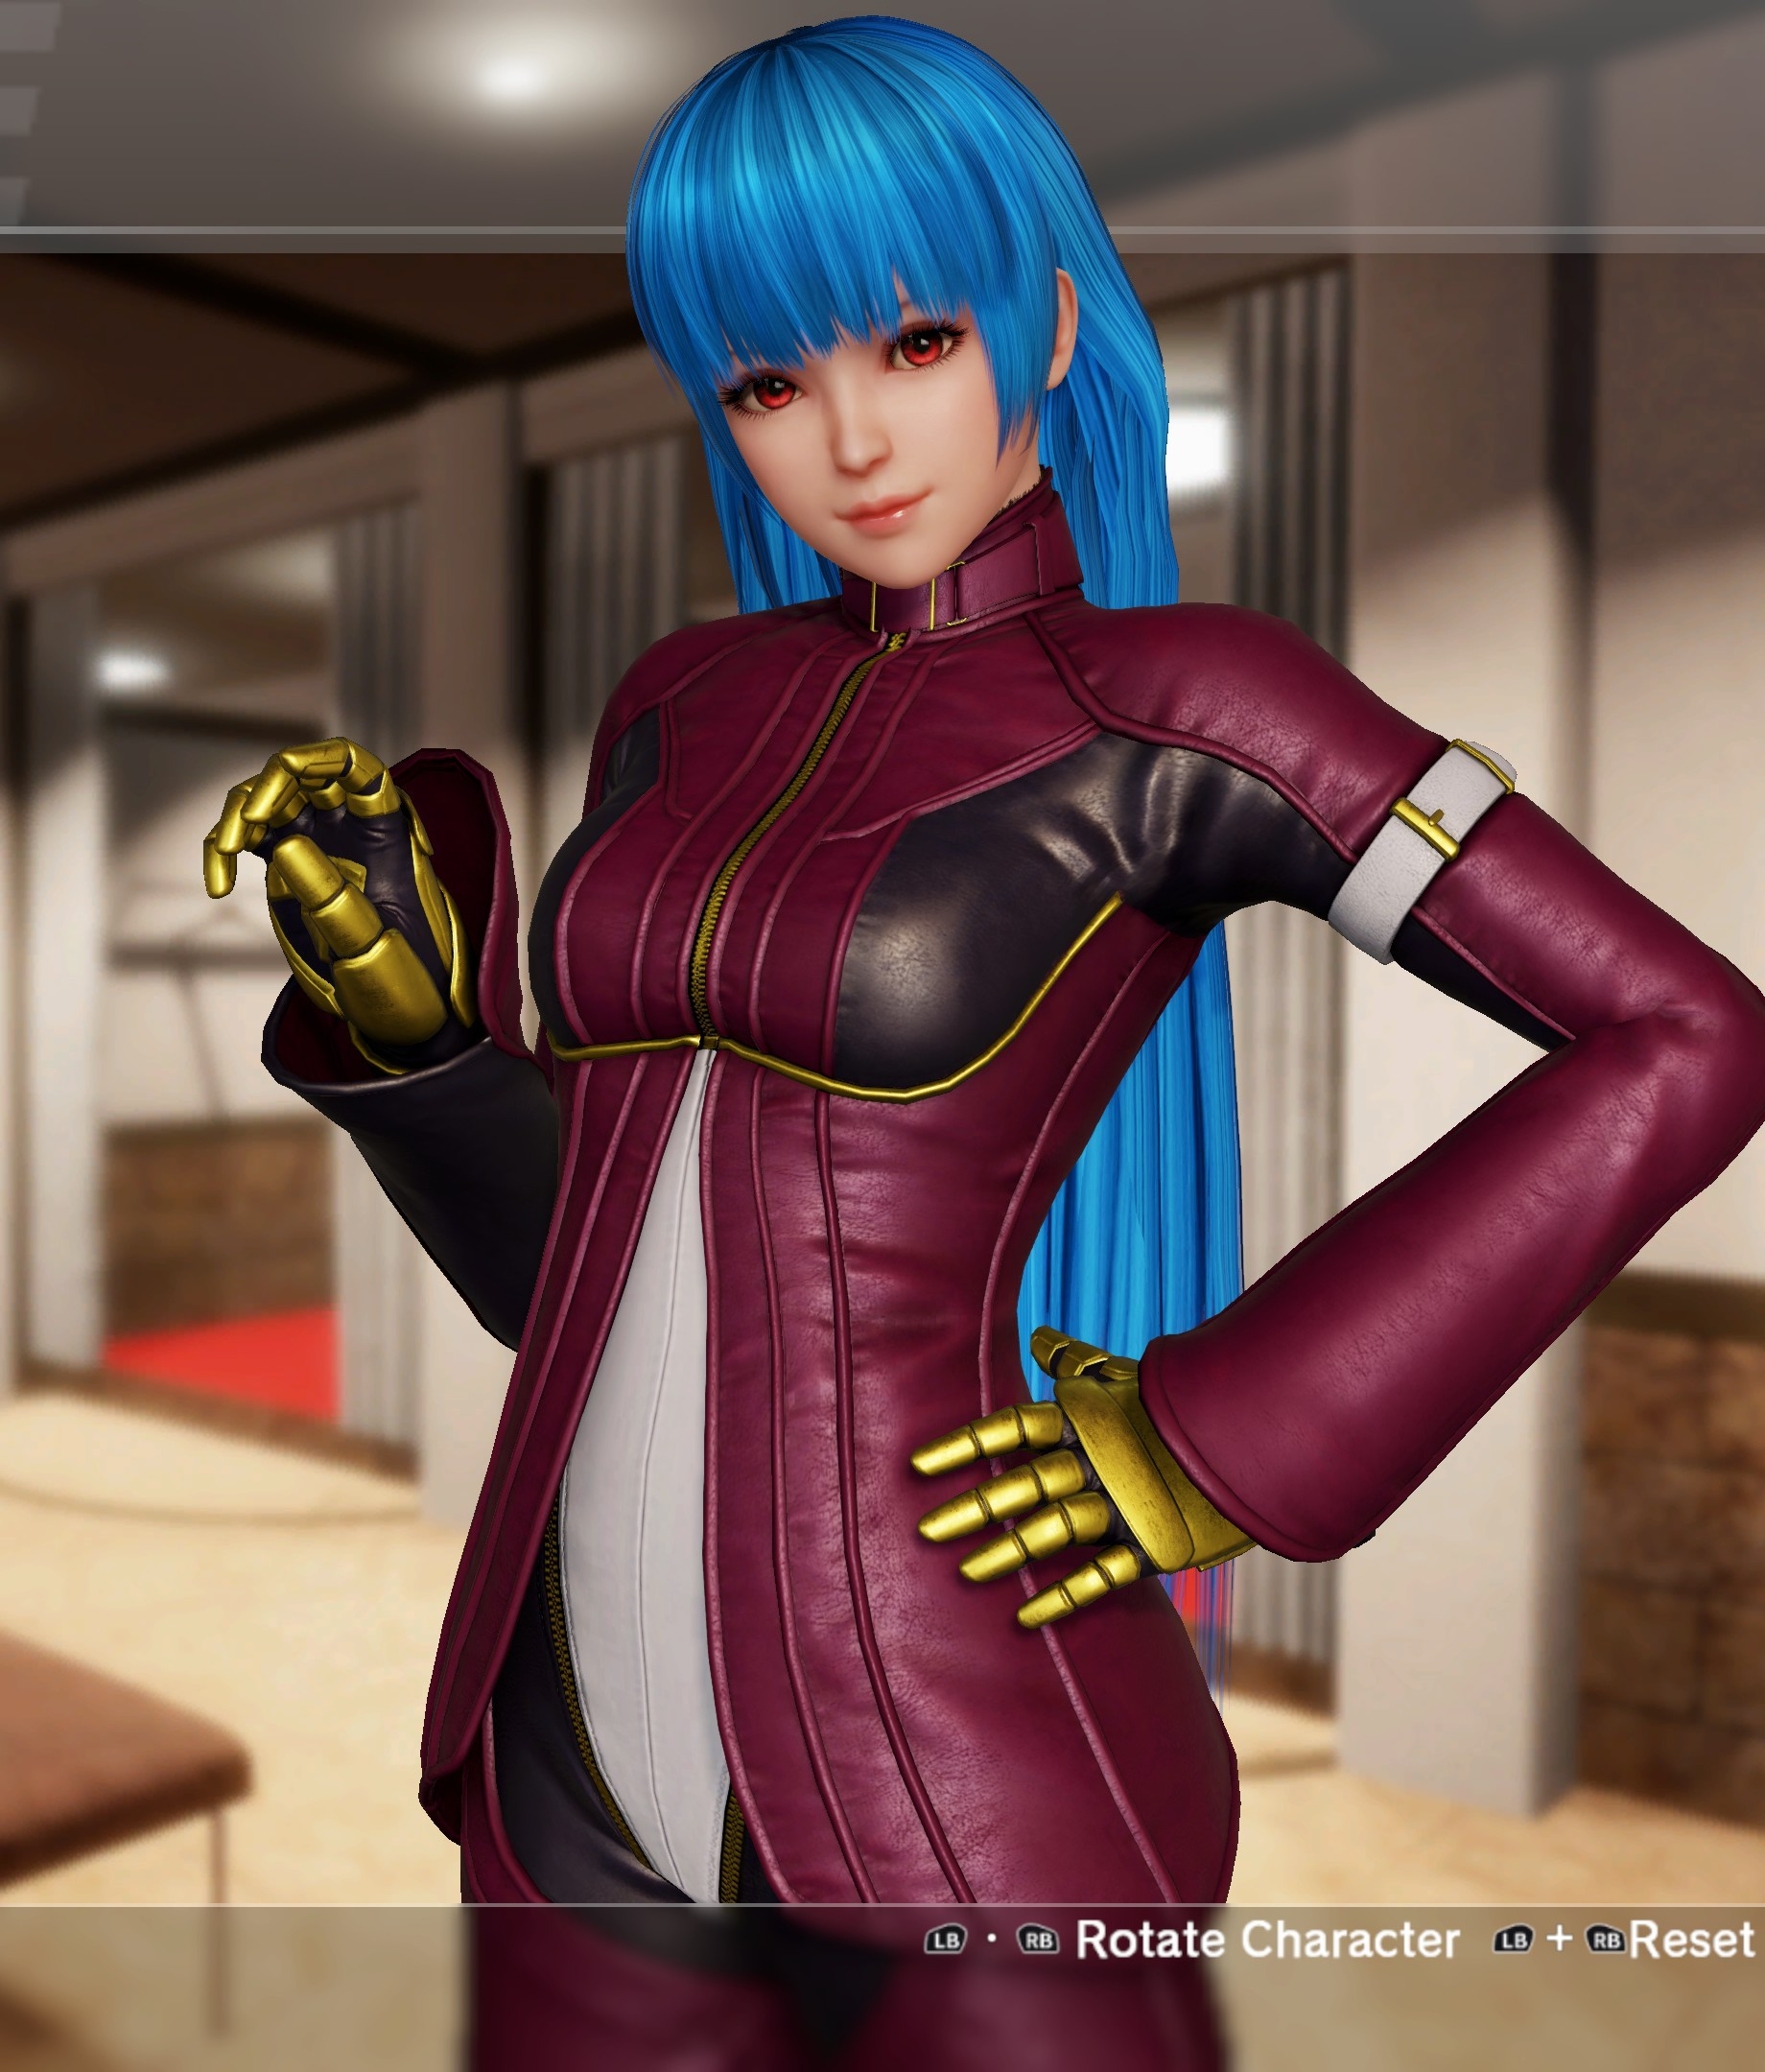 72adf4a9dd014 Costume 1 - Purple bodysuit. (Originally her first costume from The King of  Fighters XIV.